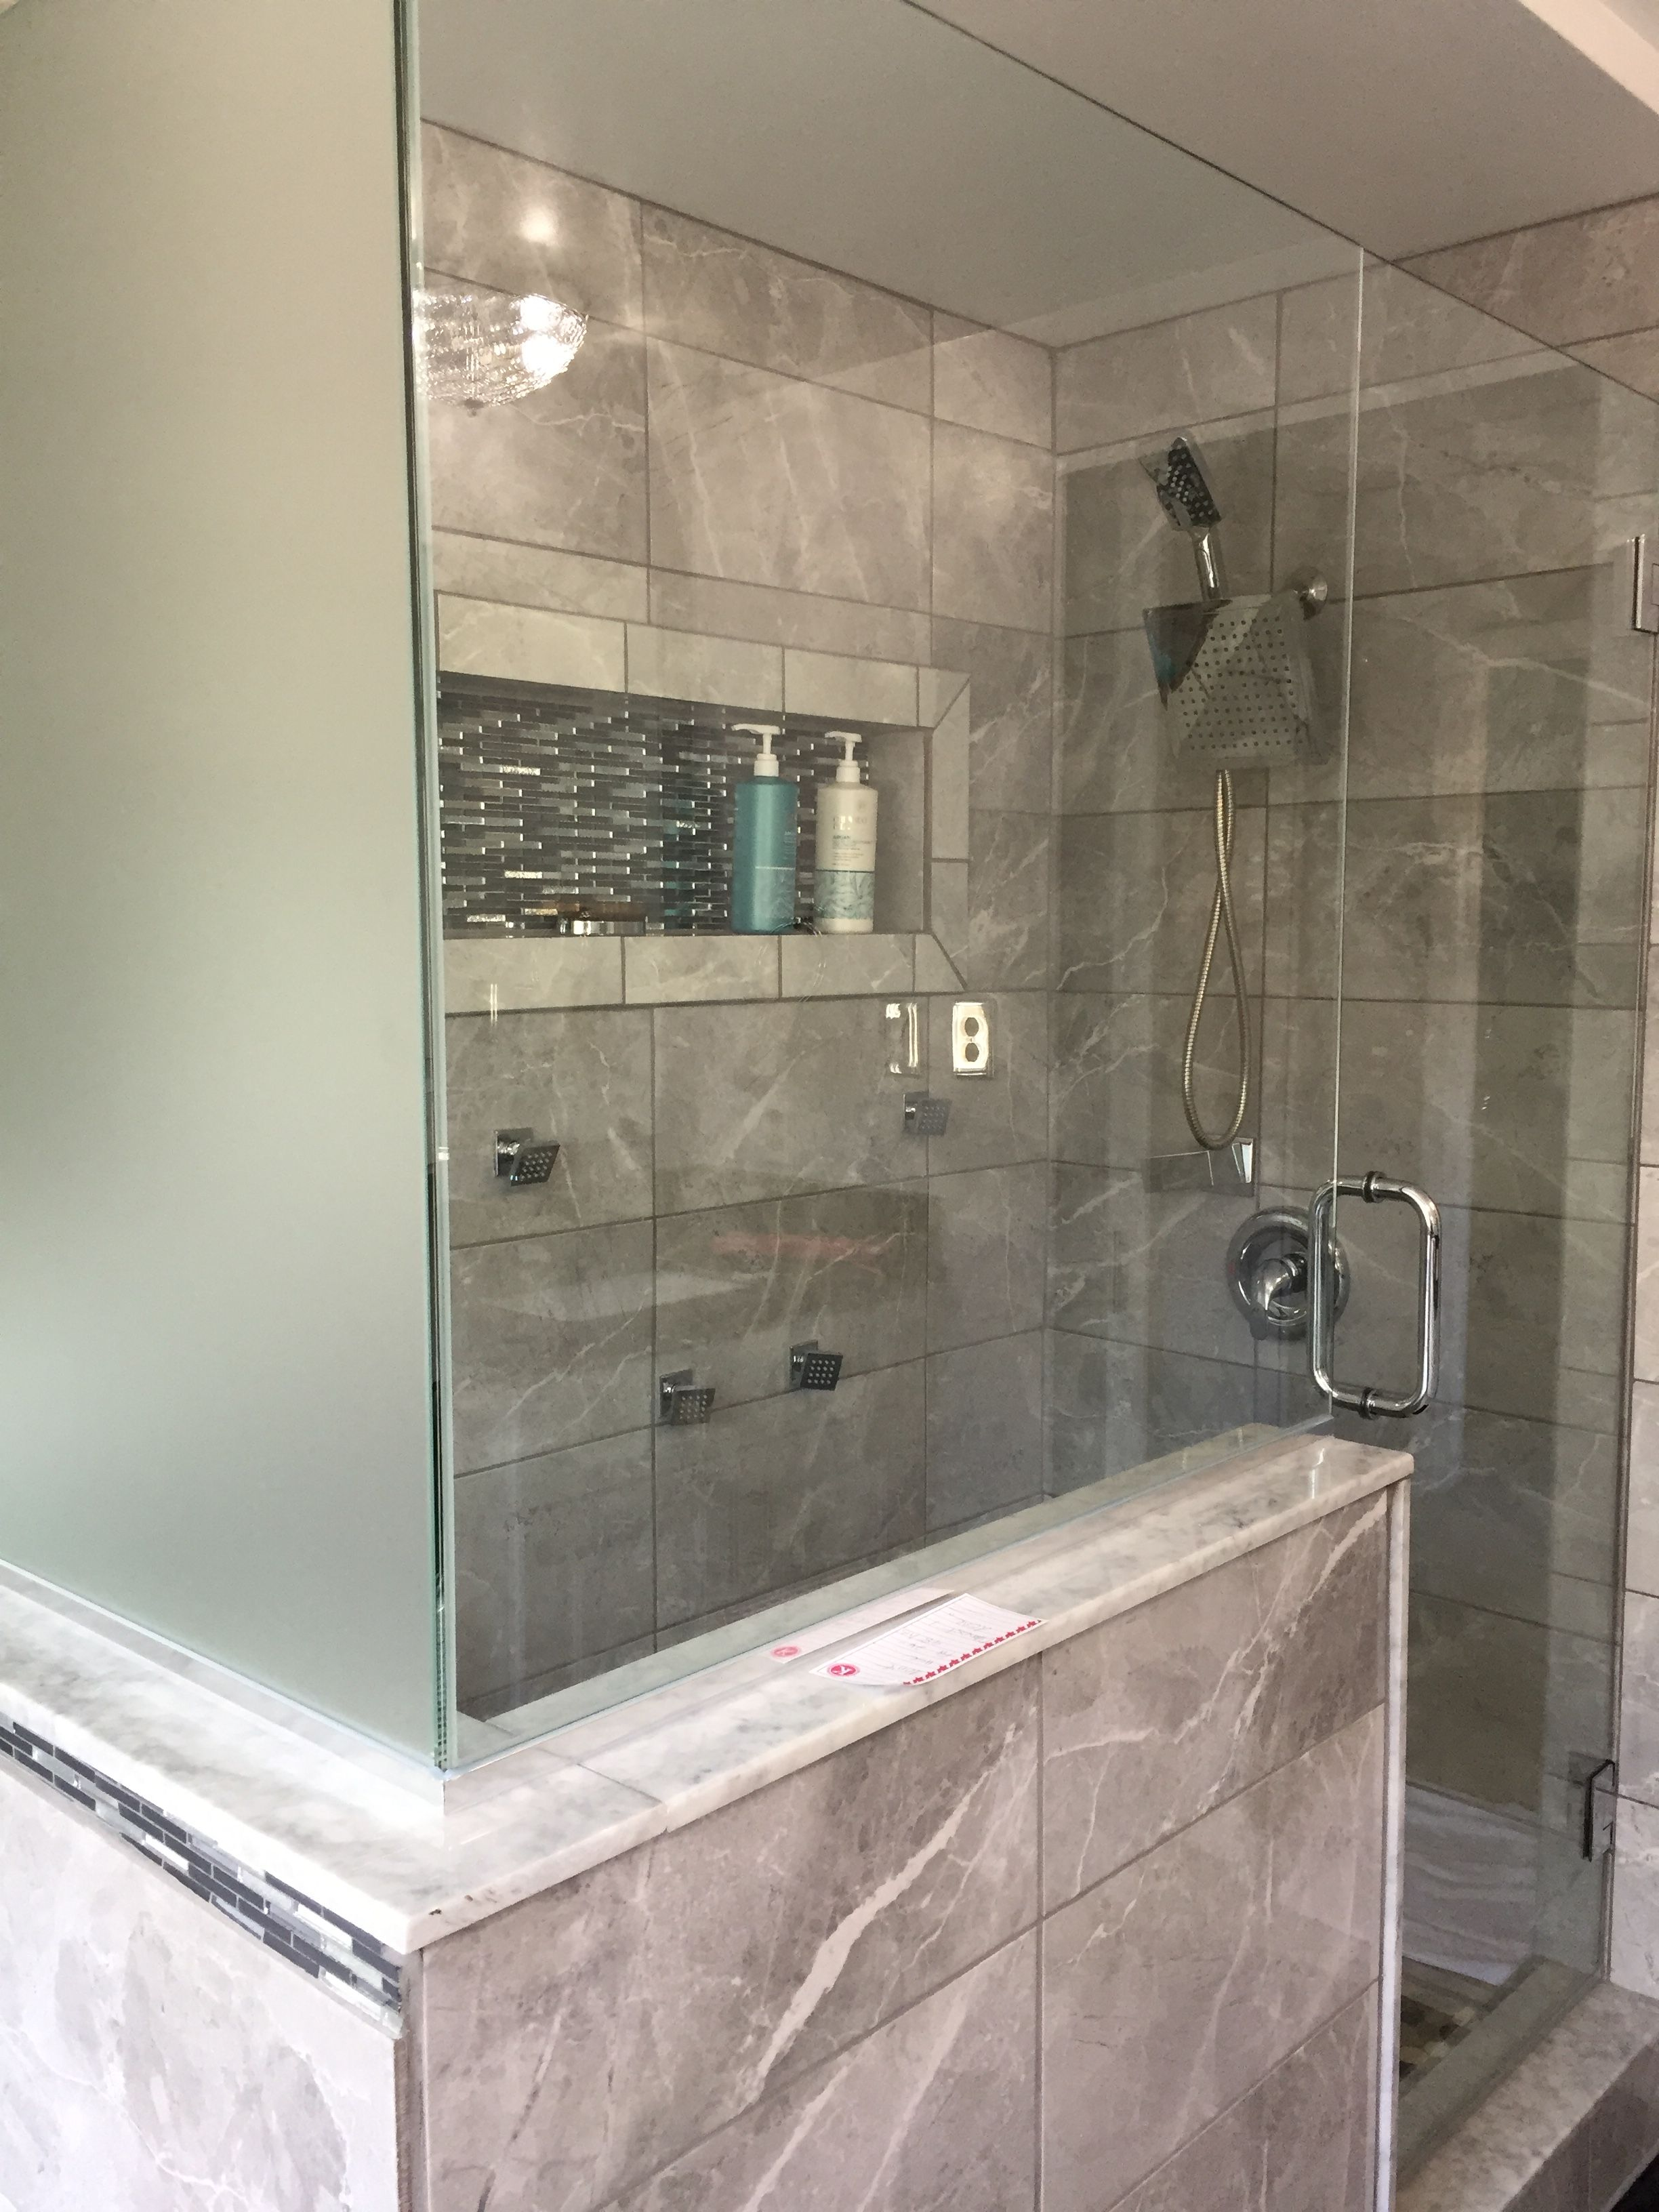 My Finished Bathroom In A Small Space Replaced The Tub